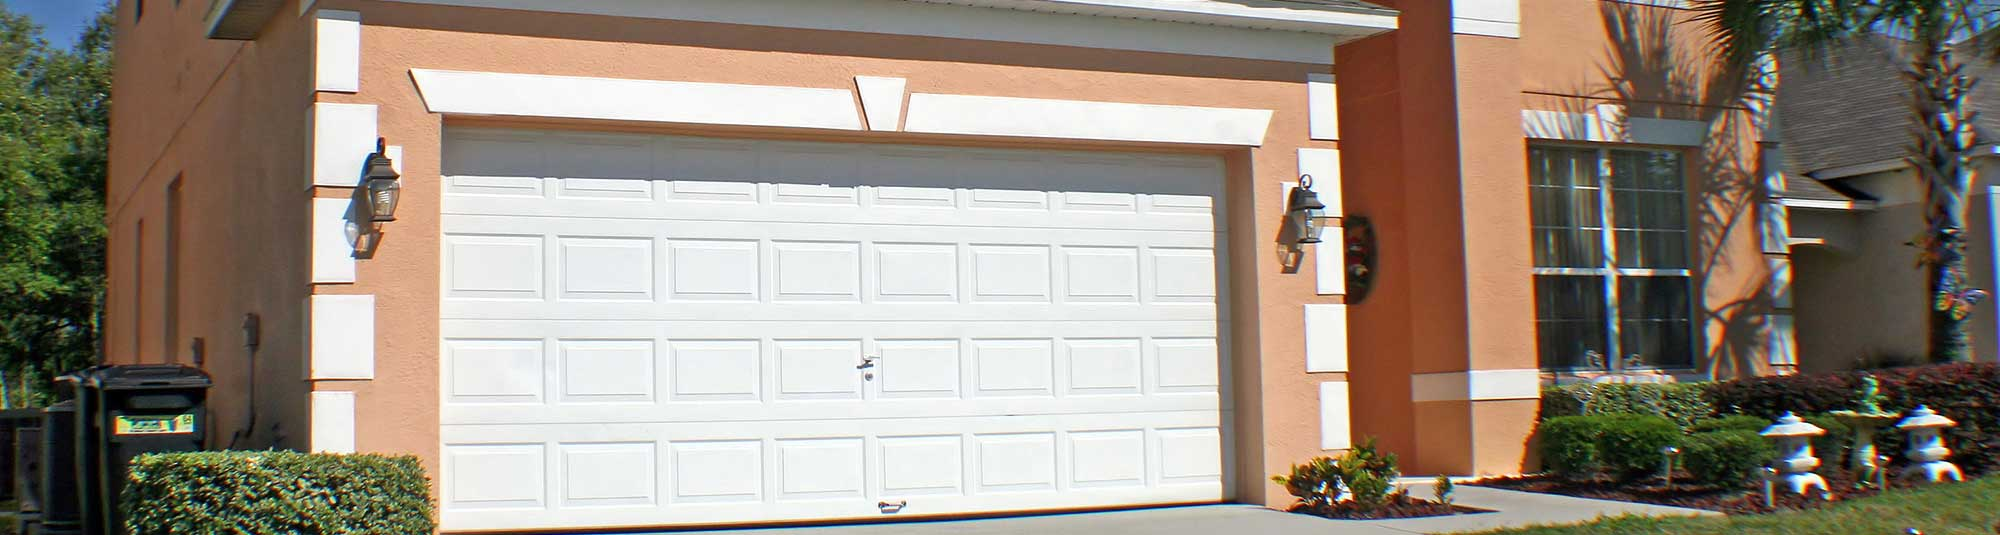 garage door openers overhead doors roll up doors and more in parkland fl